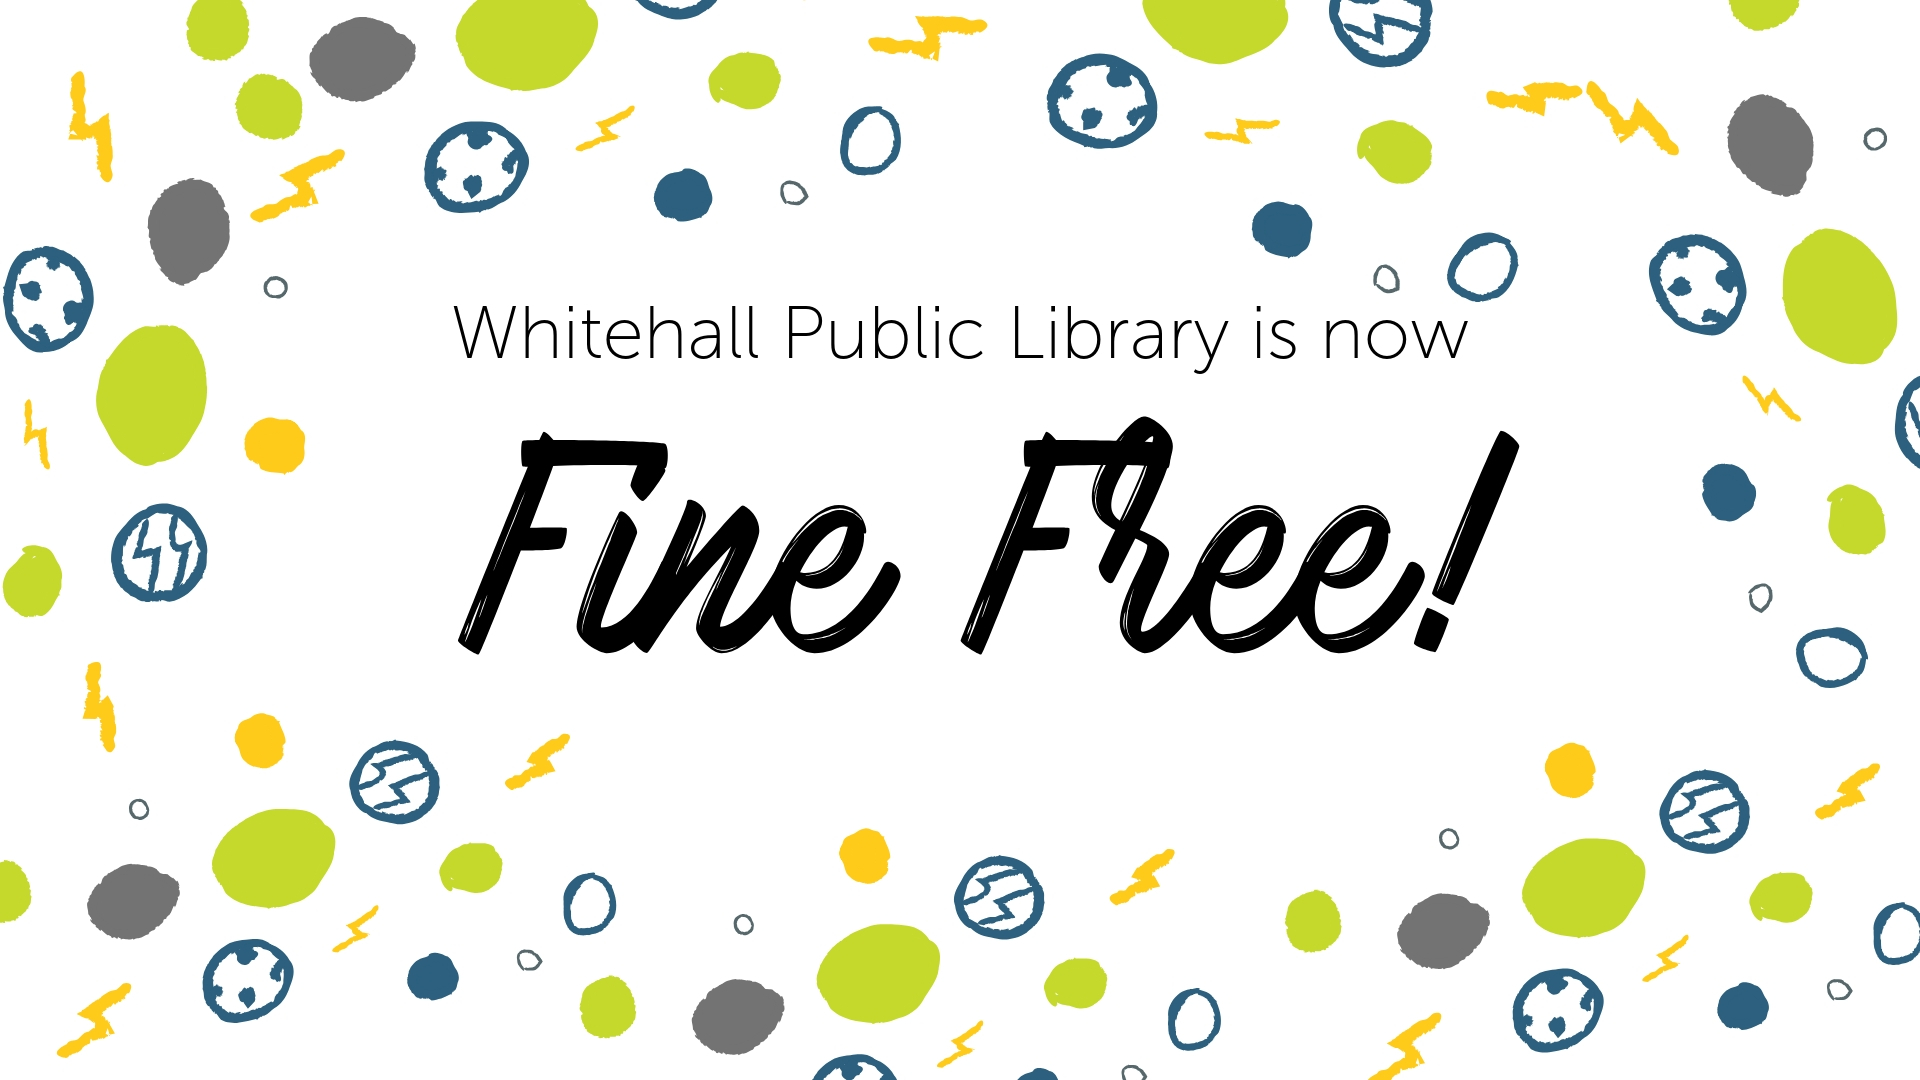 Whitehall Public Library is now fine free!